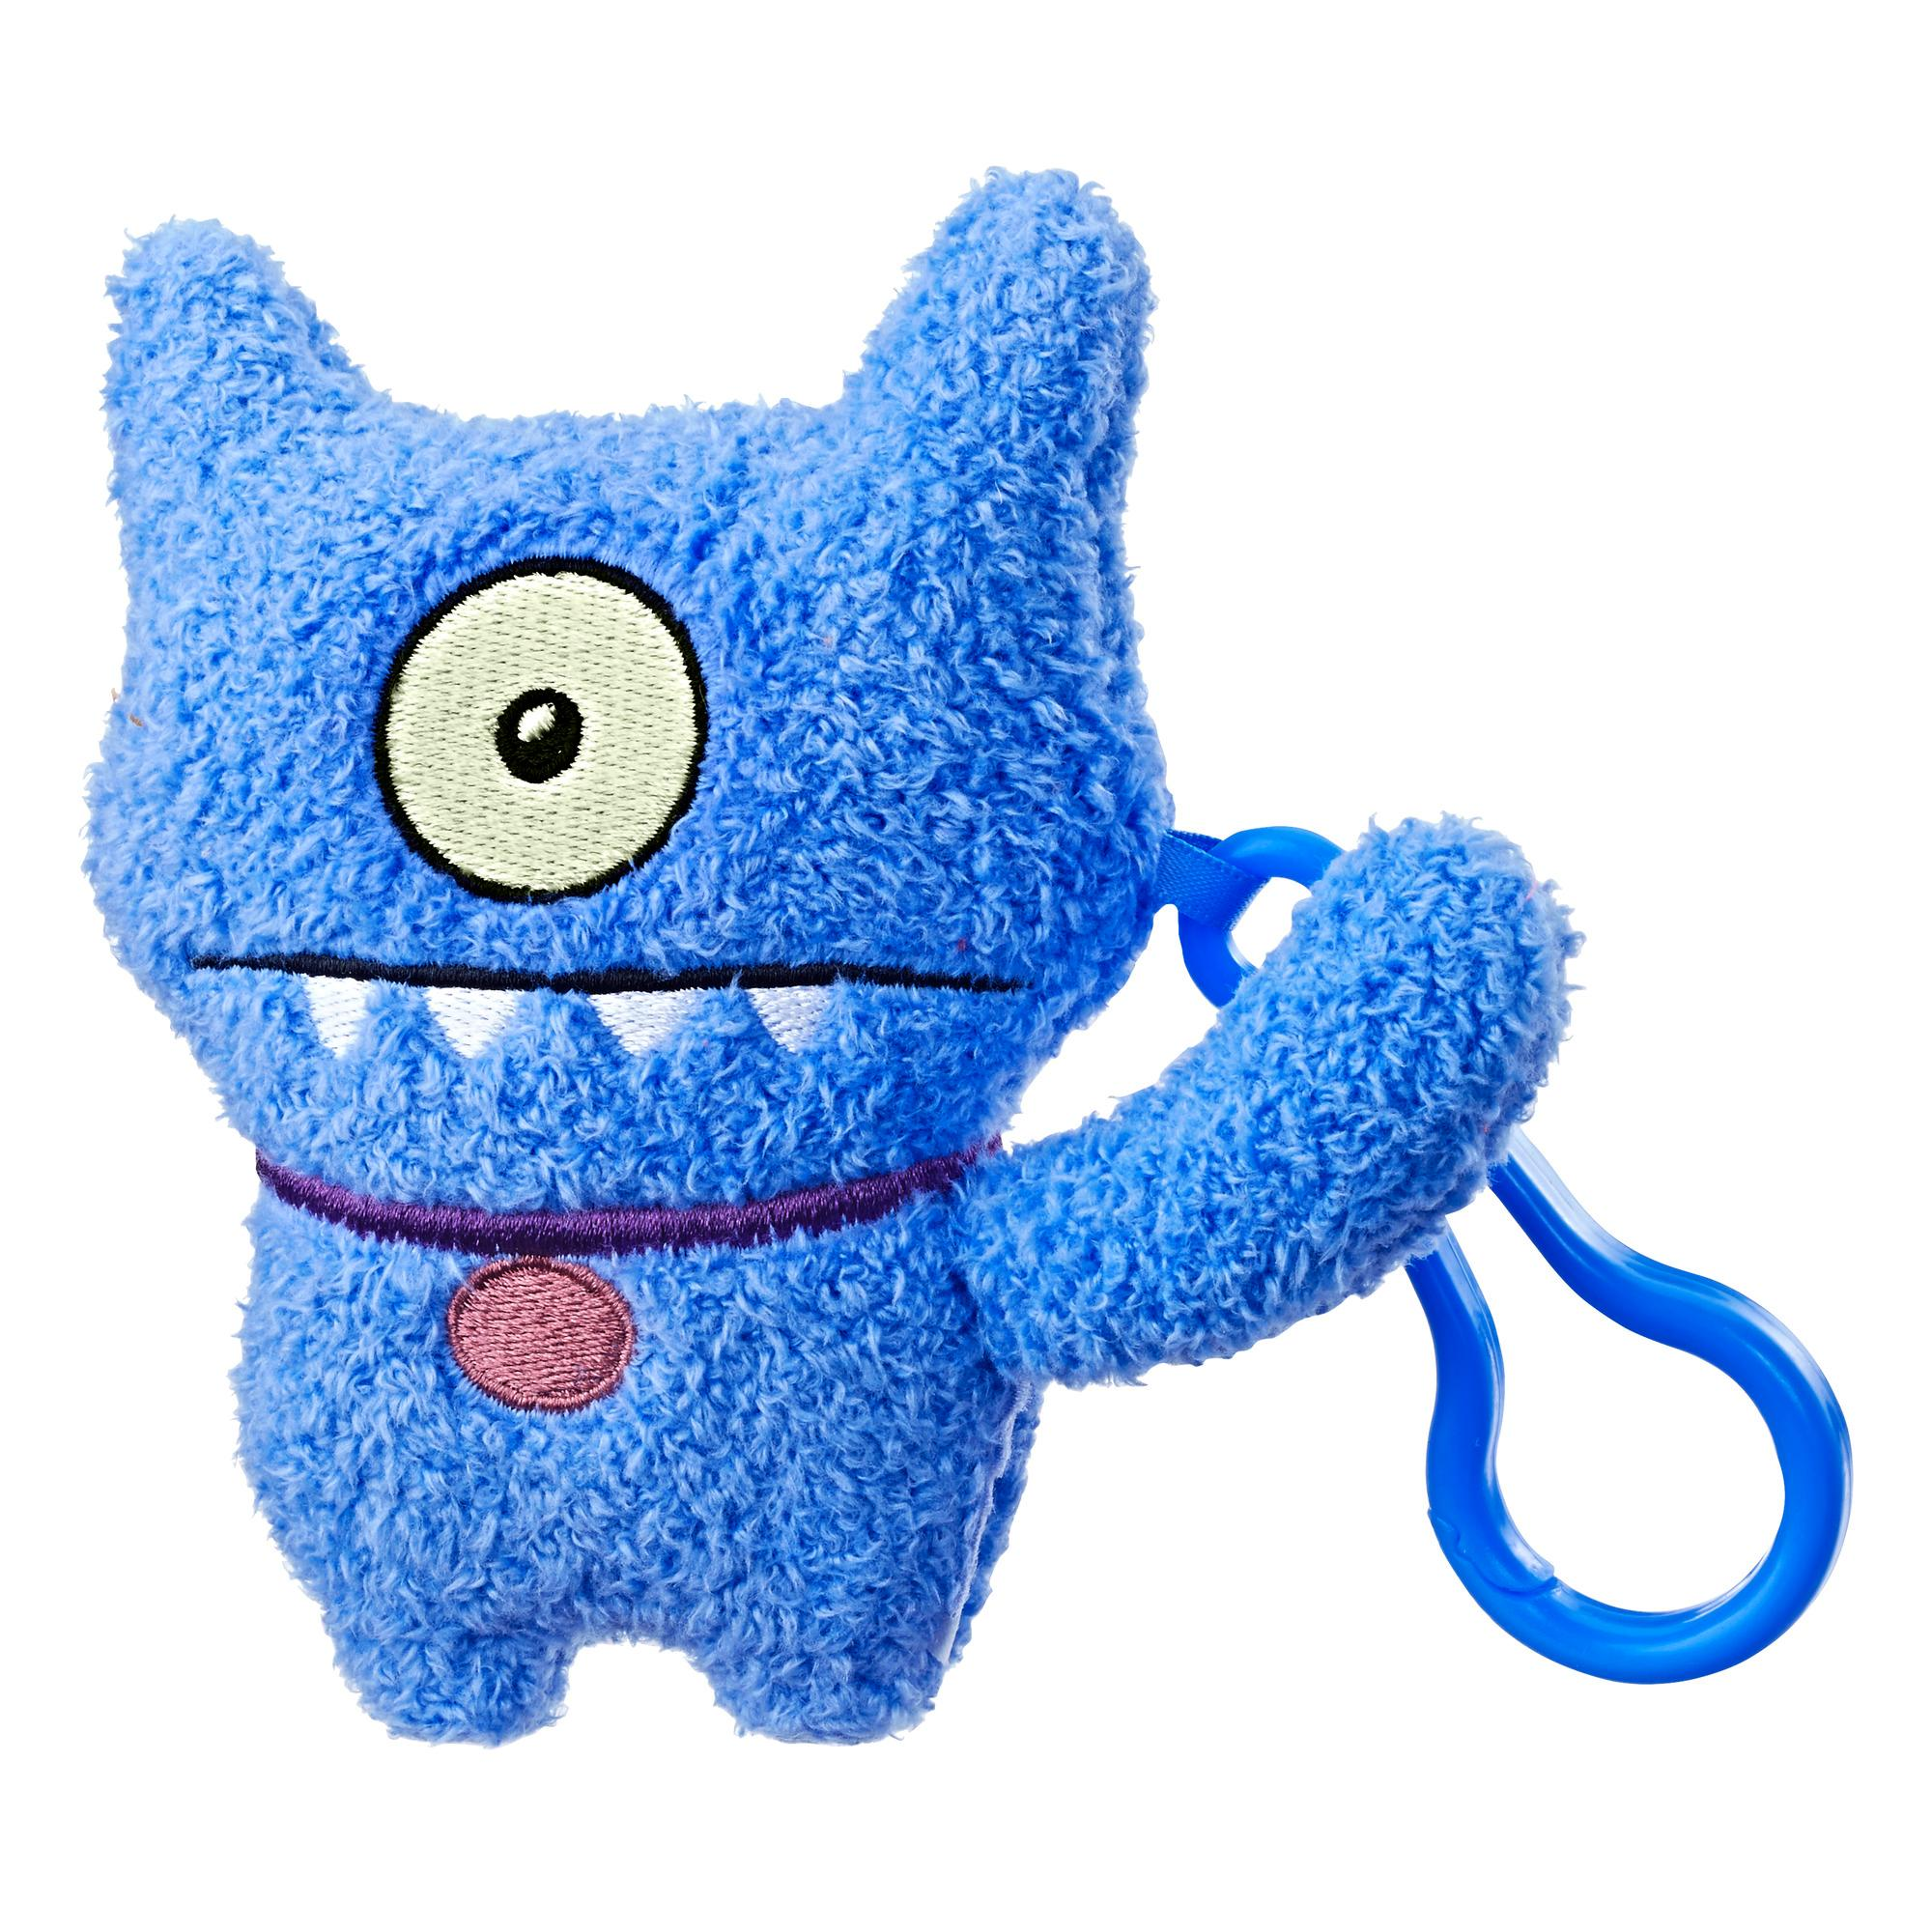 UglyDolls Ugly Dog To-Go Stuffed Plush Toy, 12,5 cm. tall